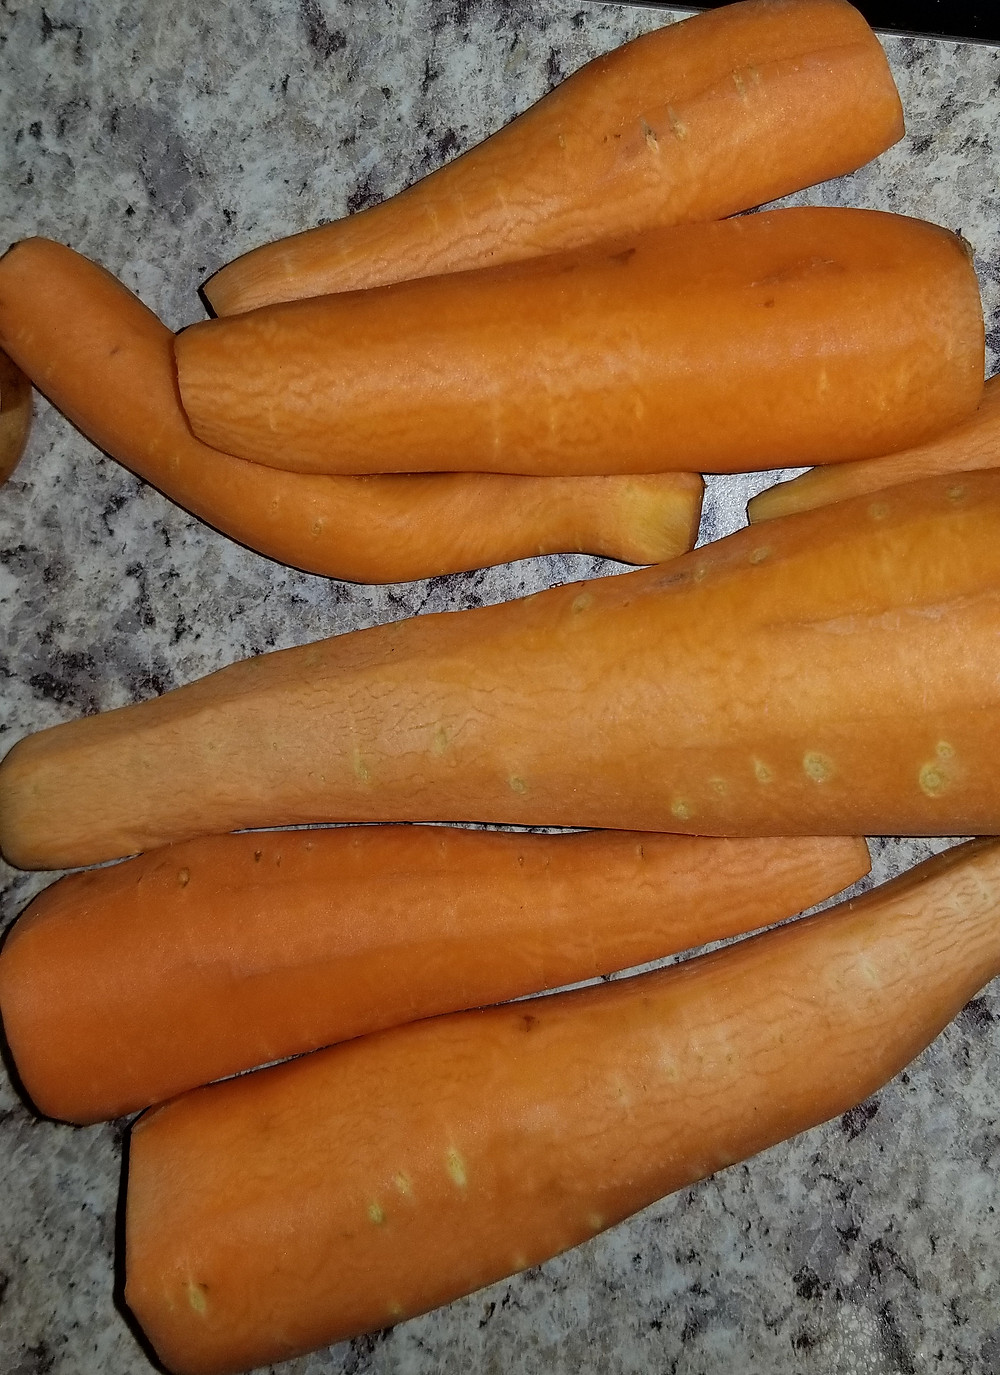 picture of 6 peeled carrots